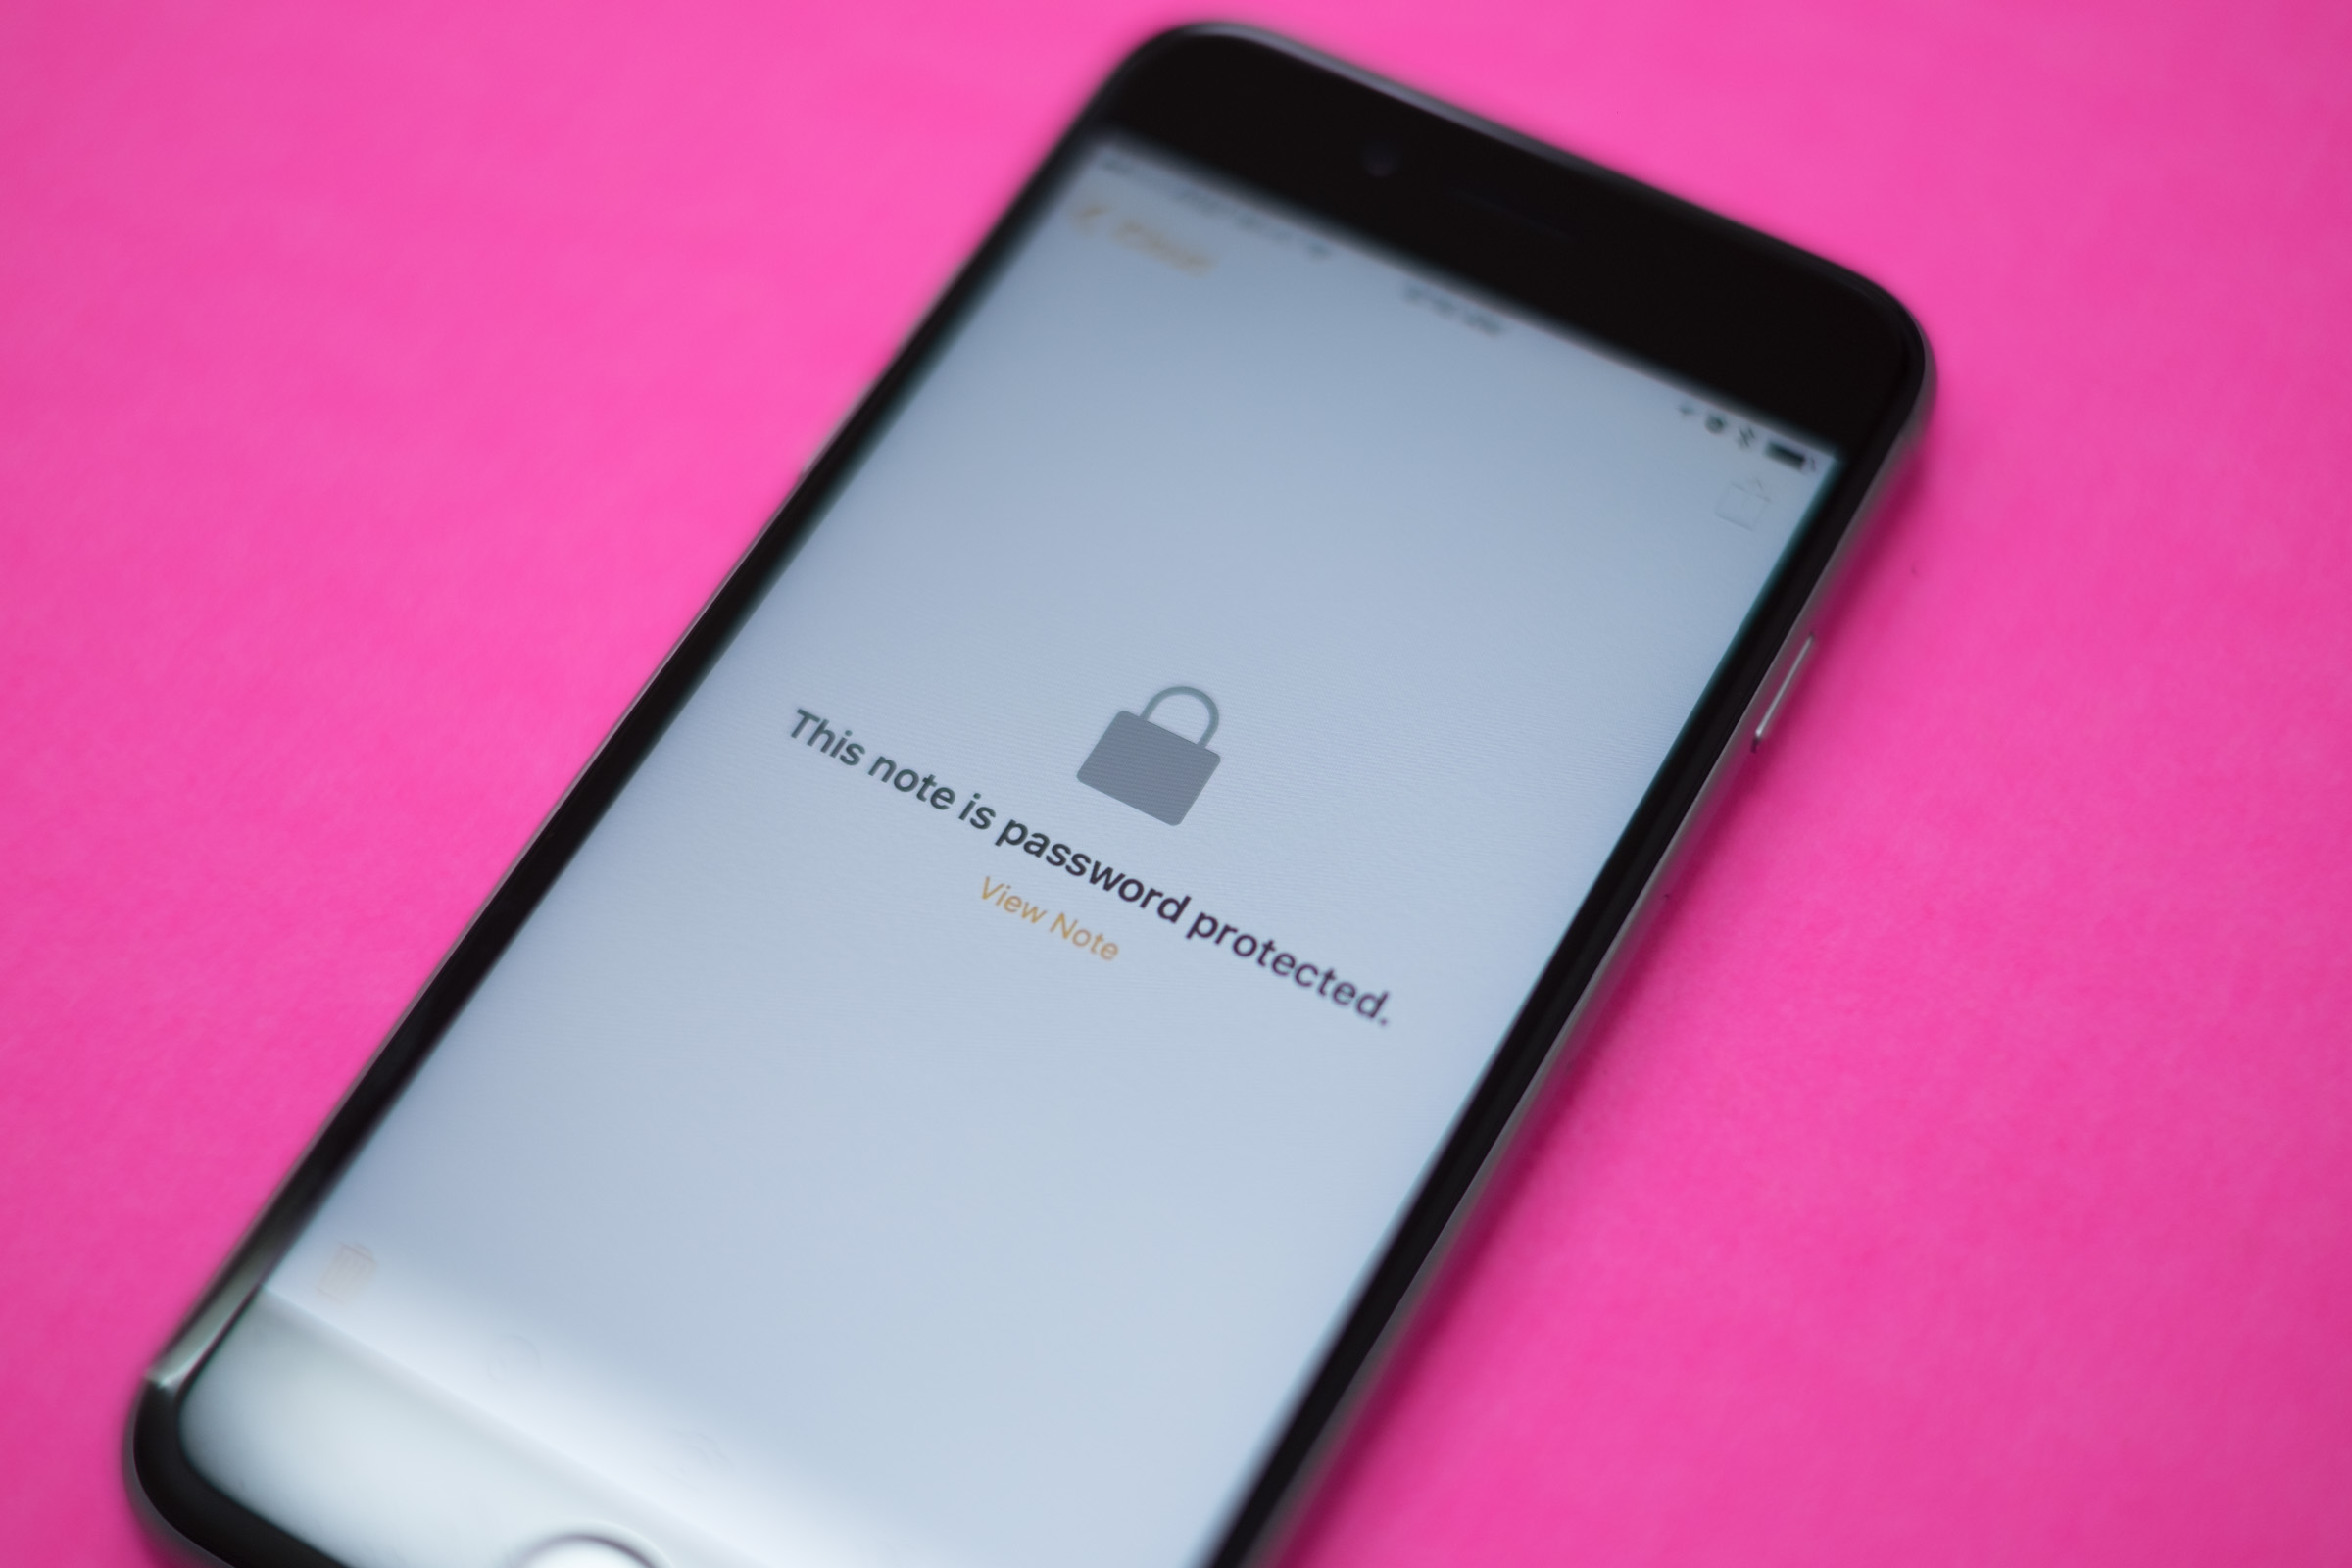 password-protected-note-ios-9-3.jpg